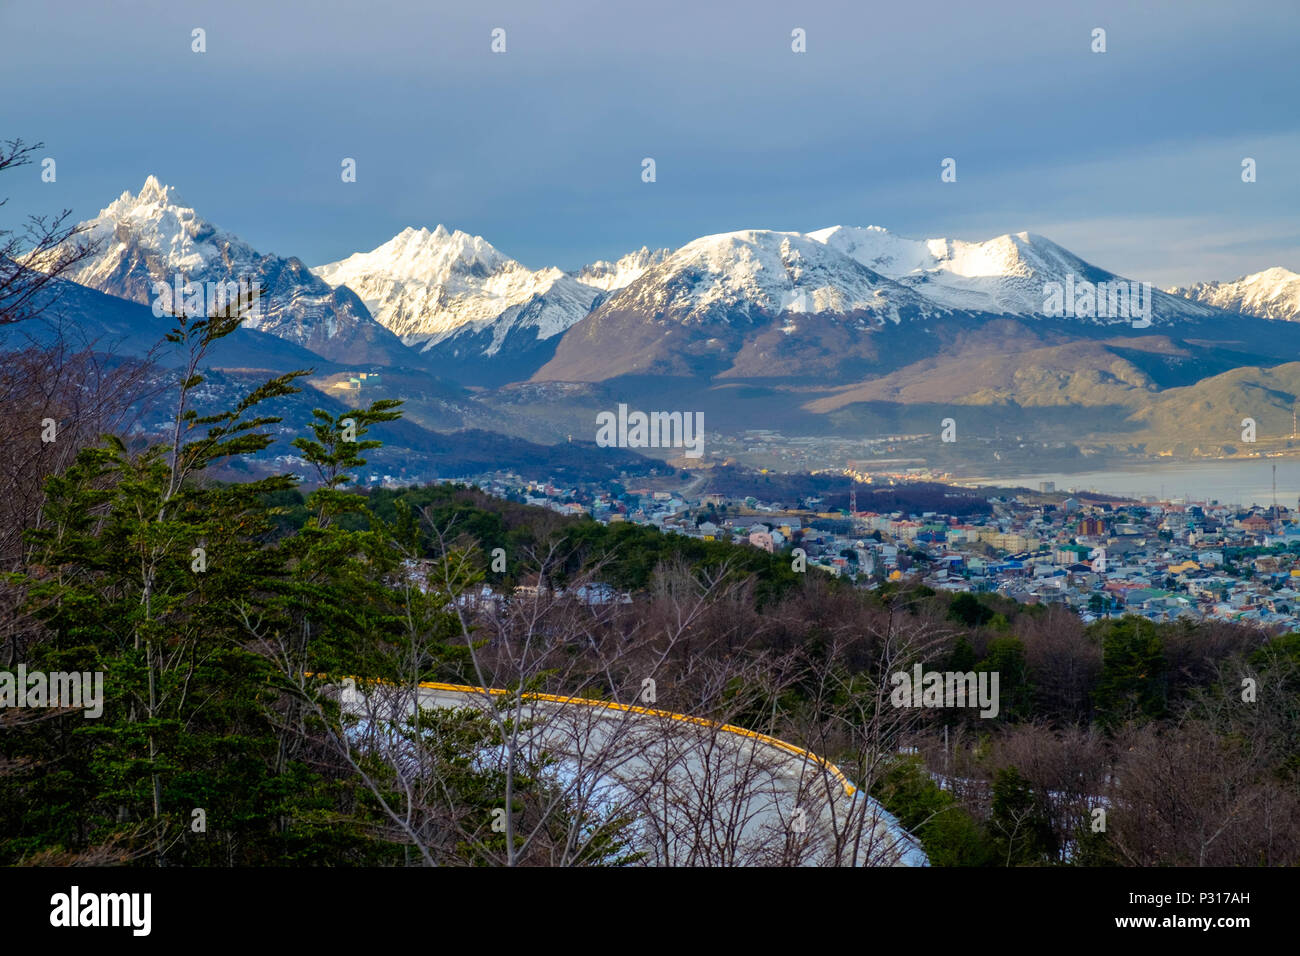 A road full of curves climbs above Ushuaia to the Martial Glacier. Behind the city, you see mountains like Monte Olivia and Monte Cinco Hermanos. Stock Photo